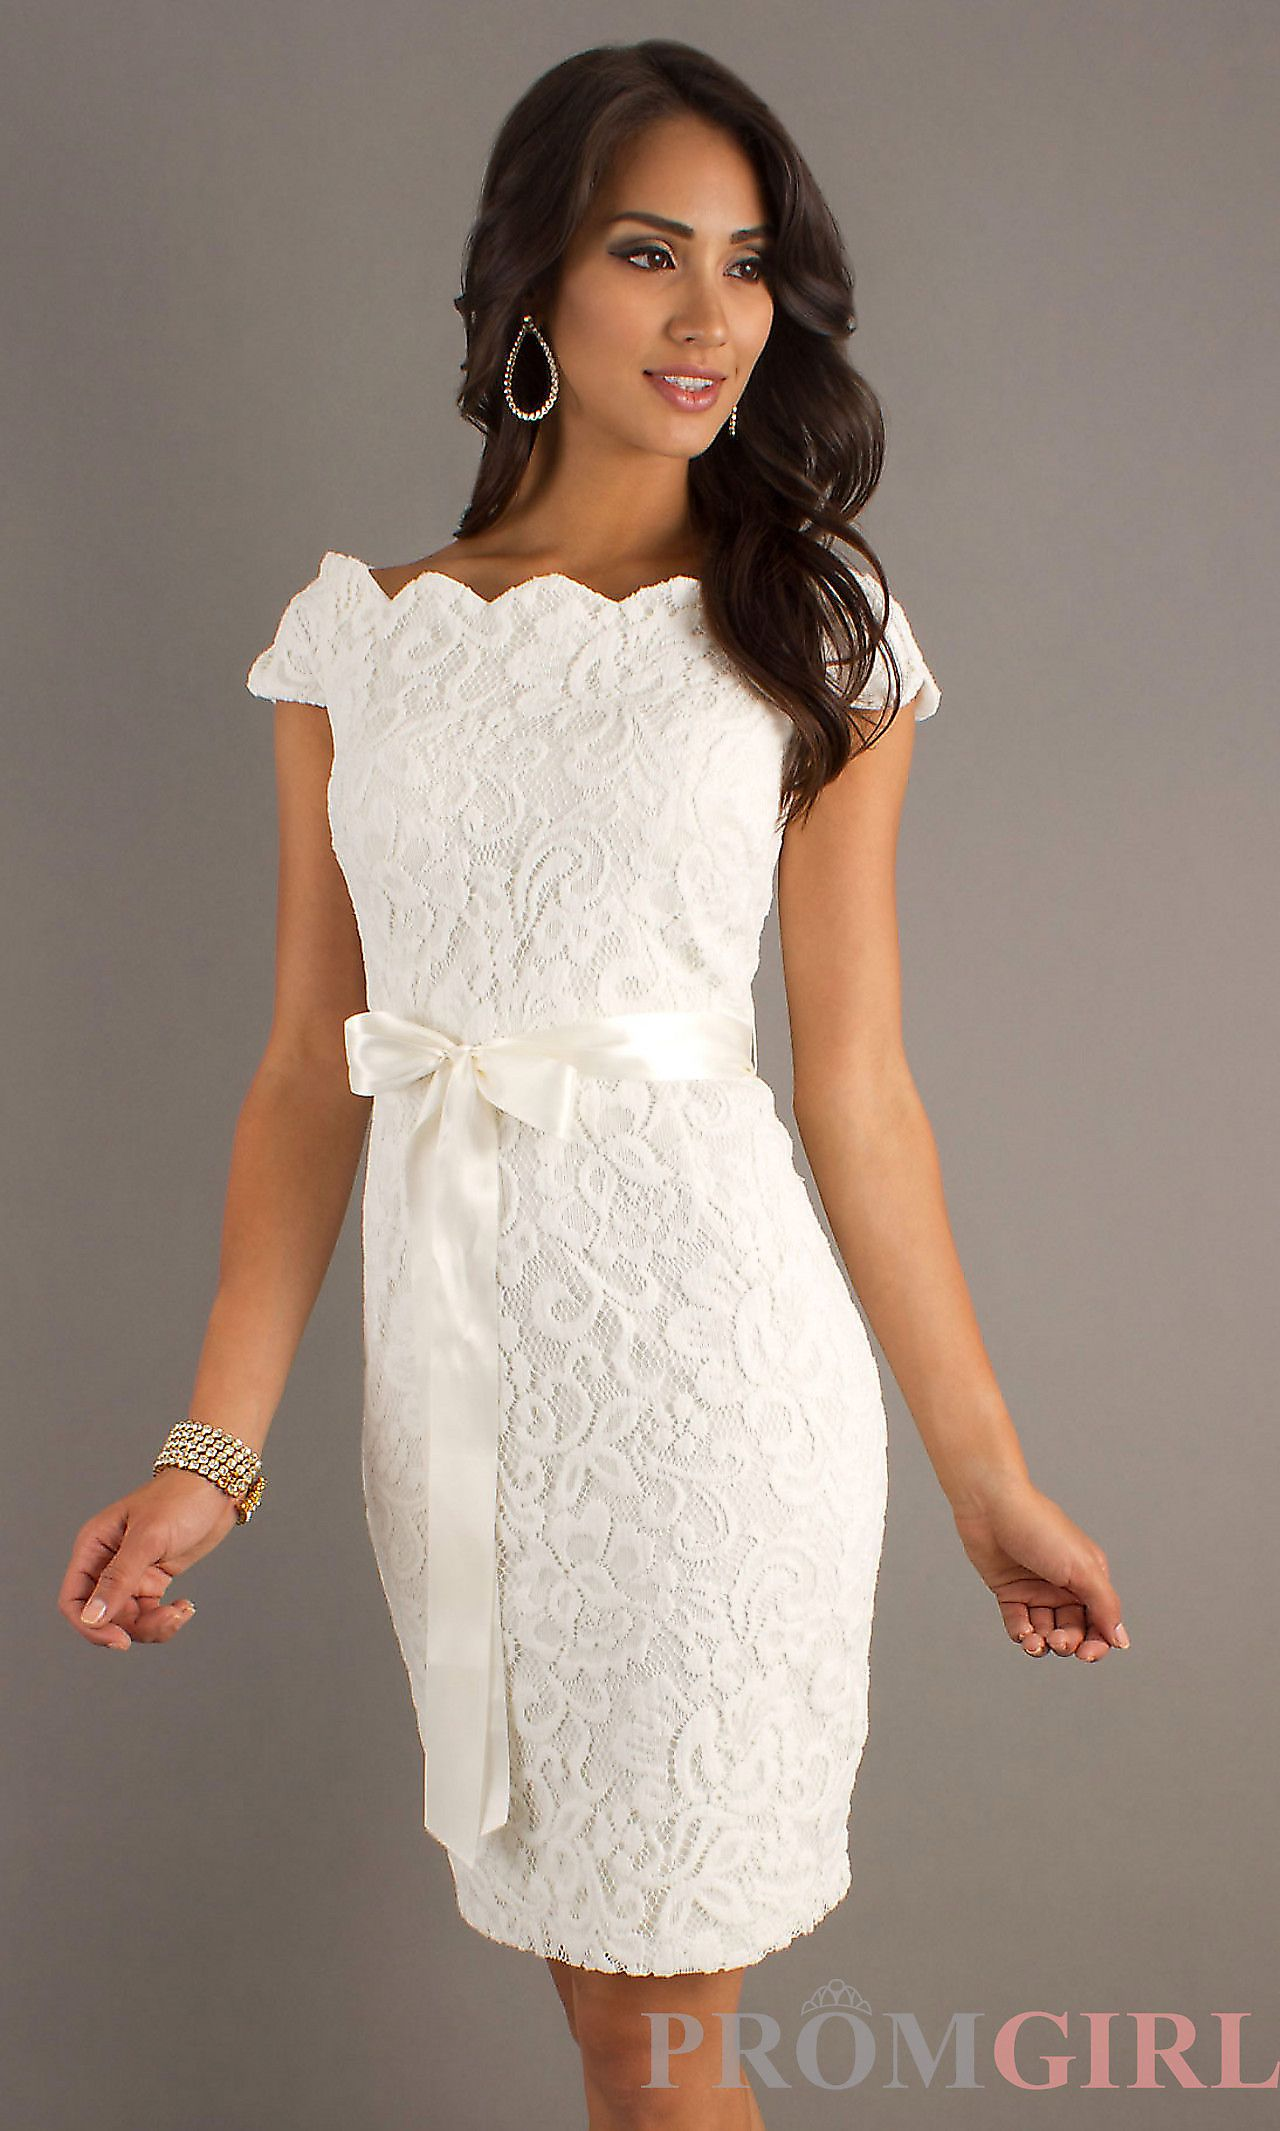 this spring bridal weddings white wear and what dresses flare stewart martha nordstrom a vert best shower to dress fit